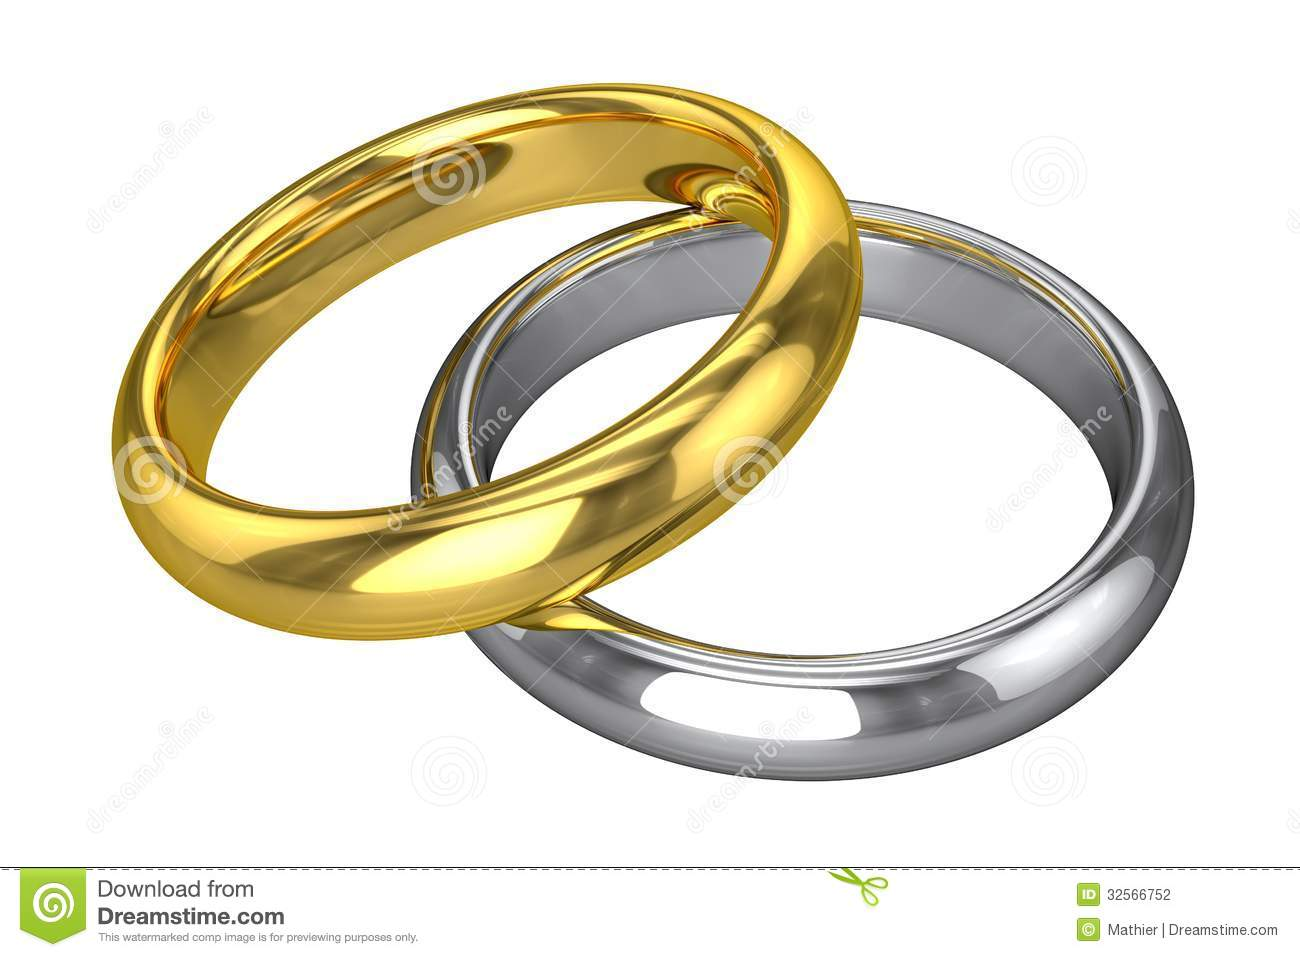 art download rings wedding free graphic clipart vintage on ring graphics clip